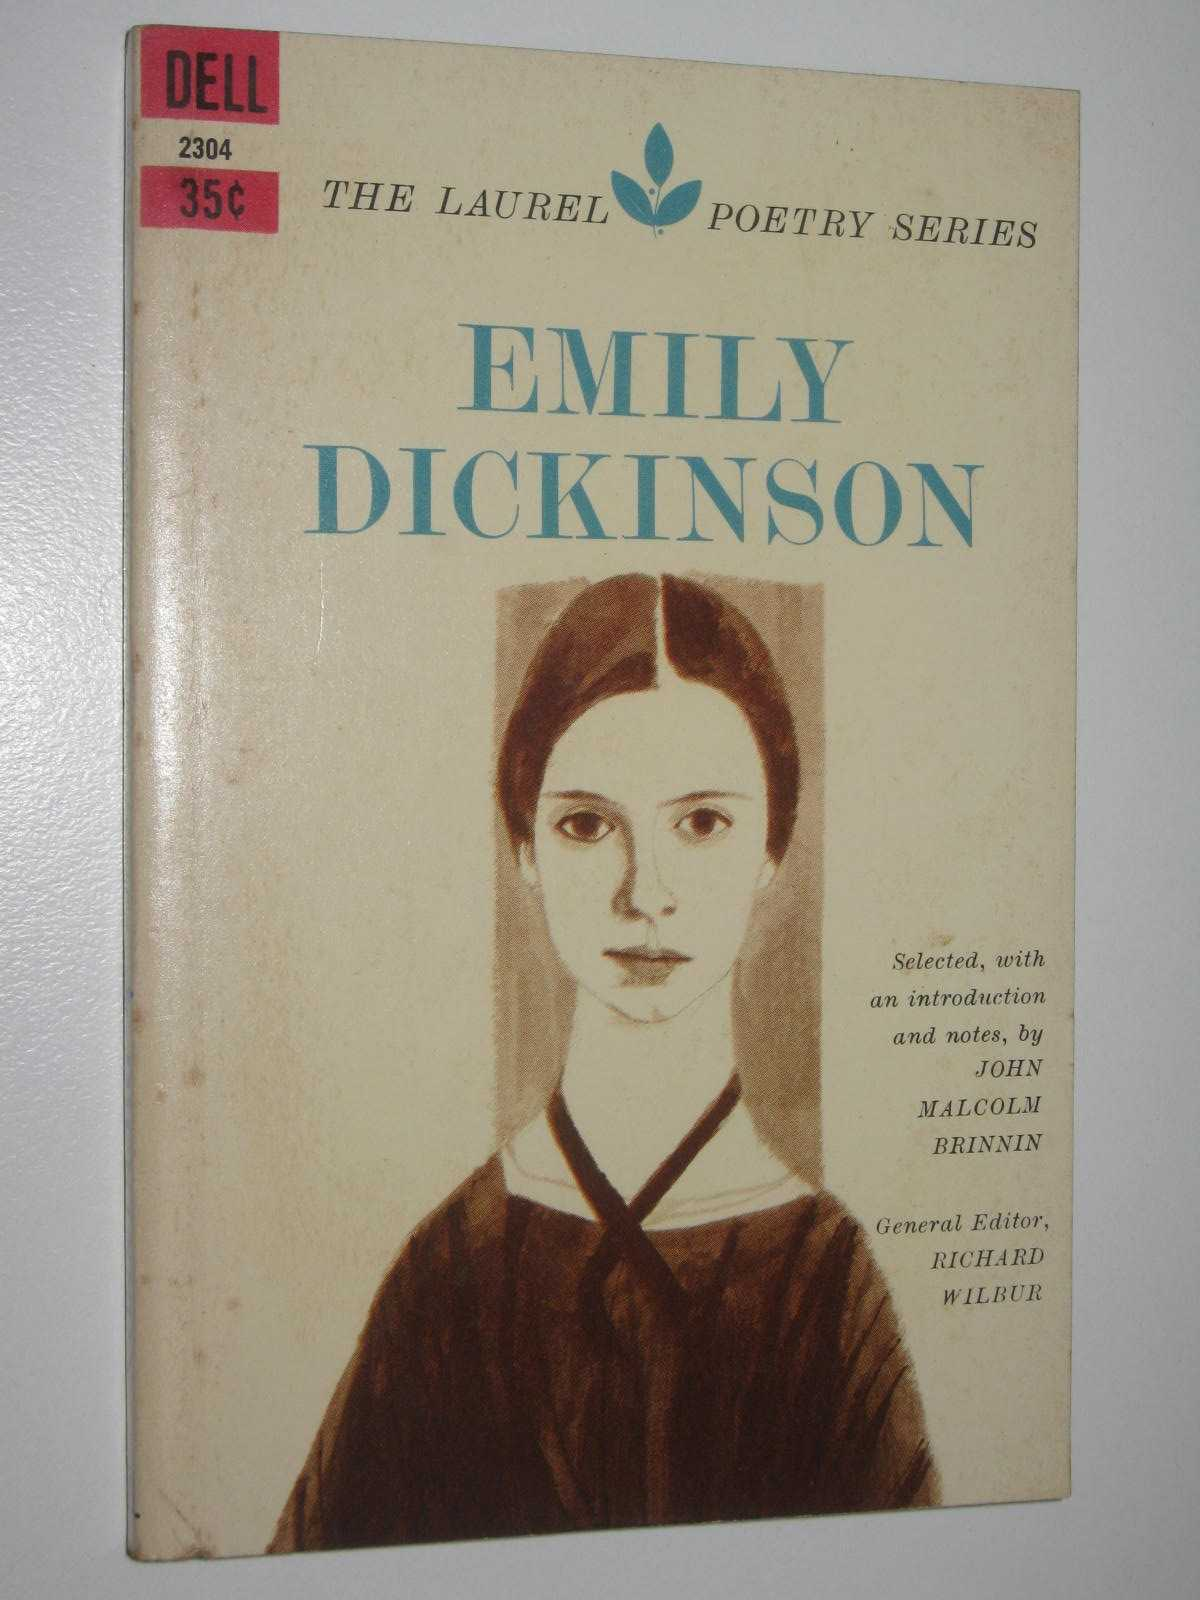 Image for Emily Dickinson - Laurel Poetry Series